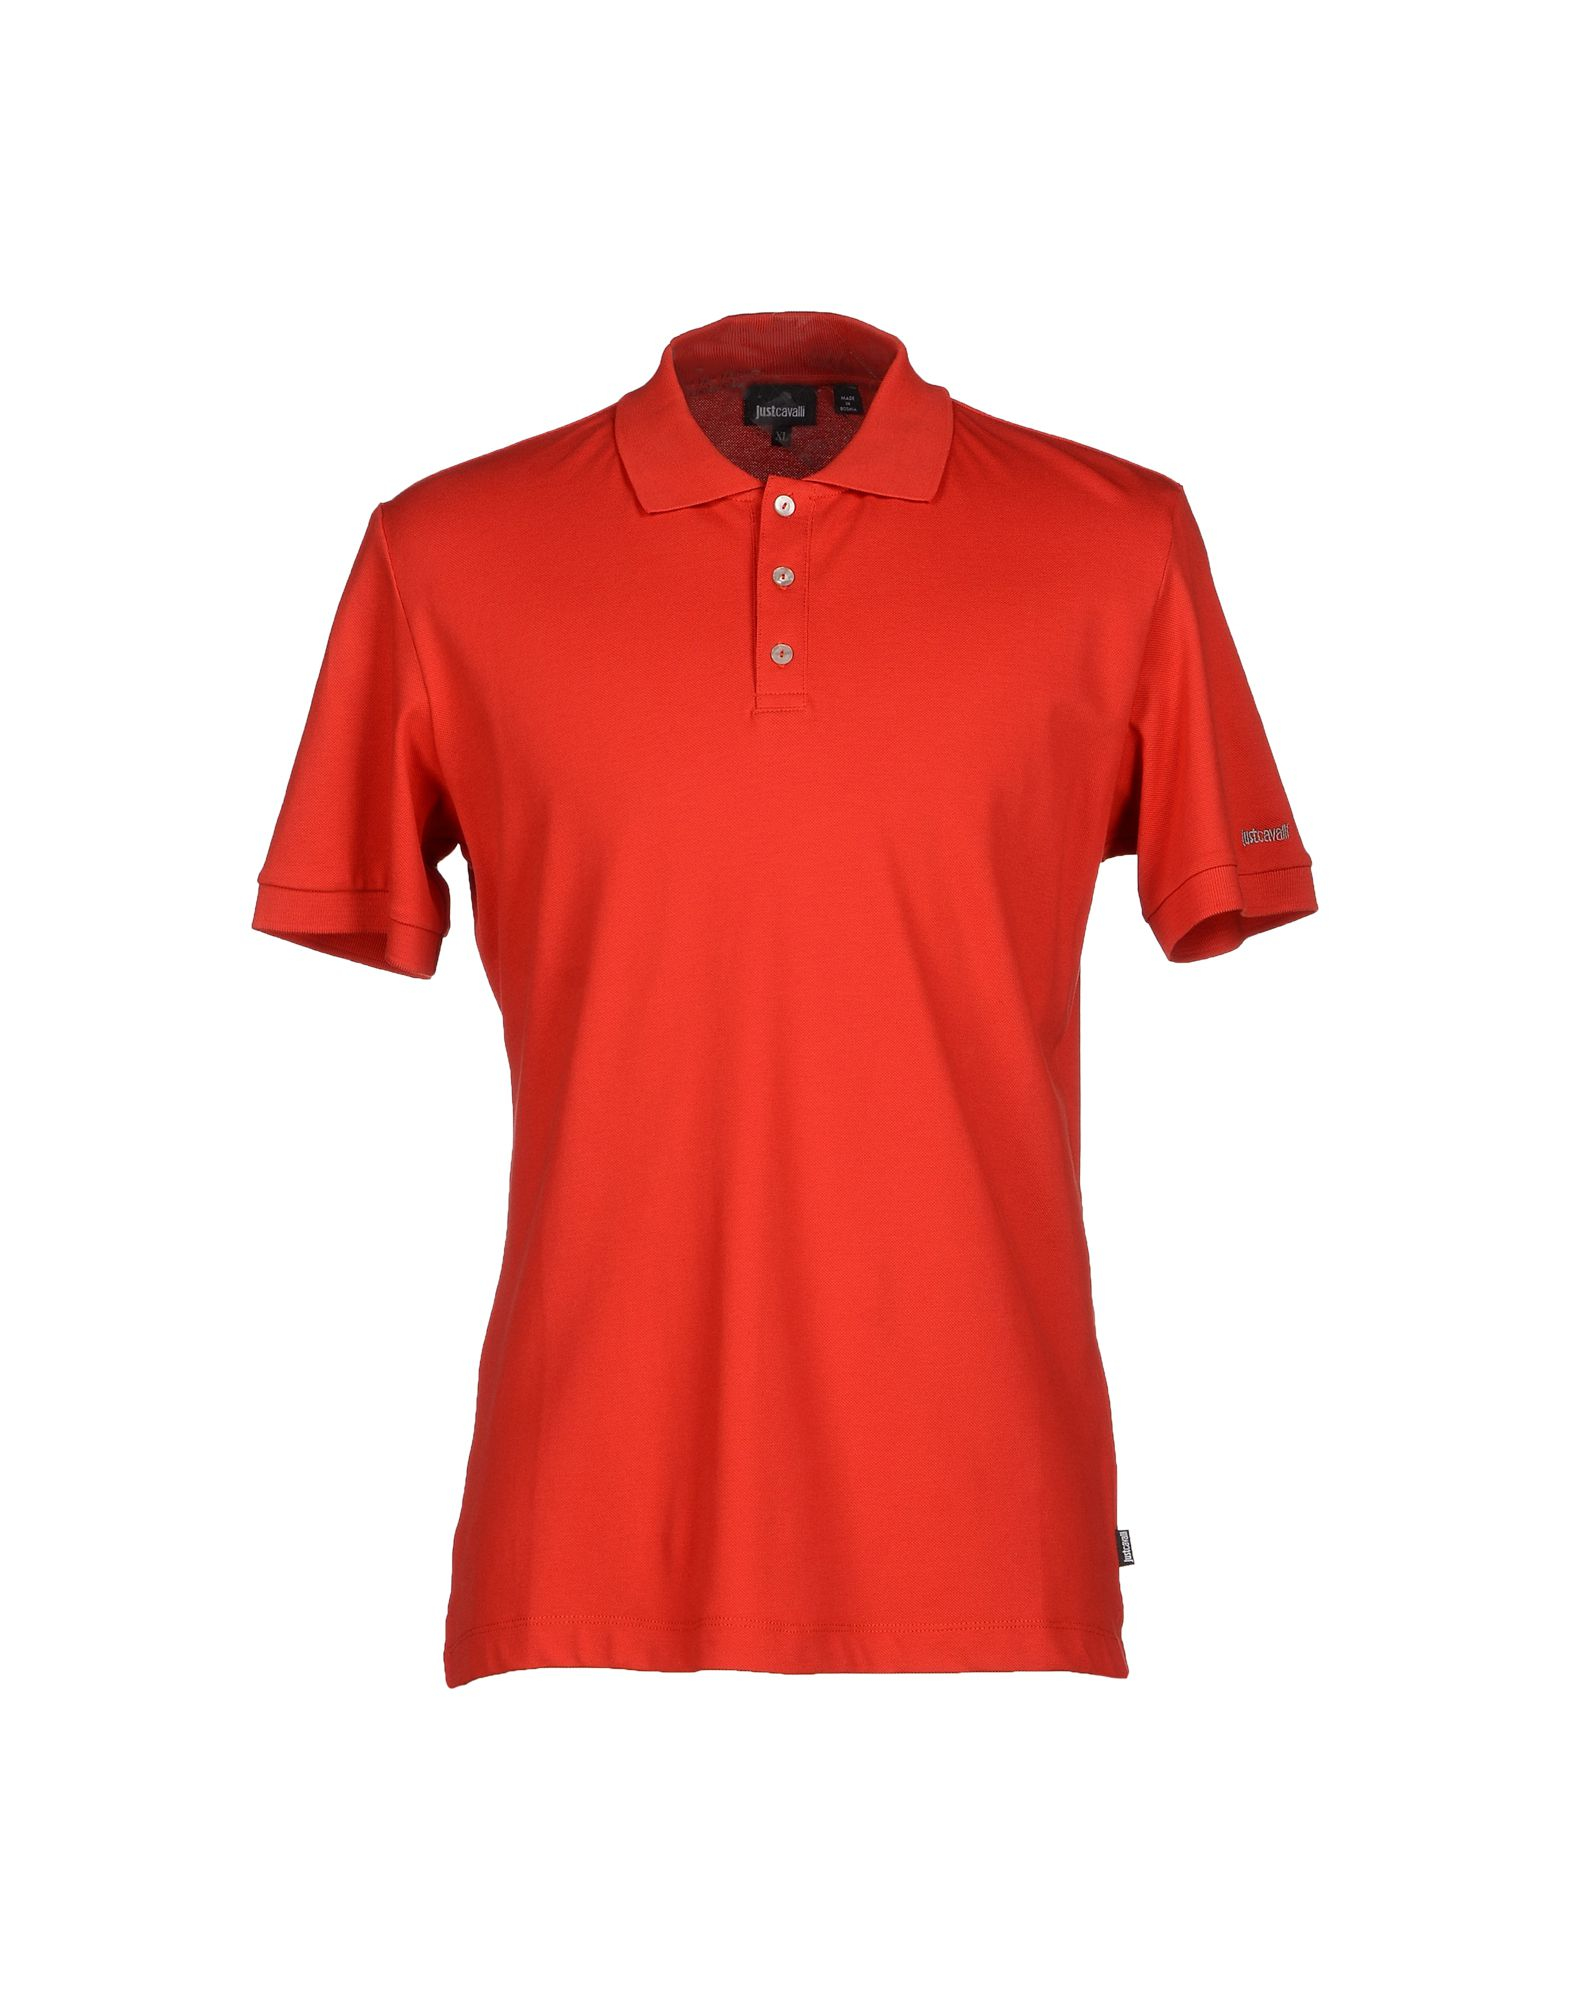 You don't need a pony for these cool polo shirts. From the beach to the office, our casual yet stylish Red Men's Polo Shirts make you the talk of the town. We have mens polos and womens polos in a variety of colors and adult sizes, giving you the ever-appealing look and feel you're after. With a.